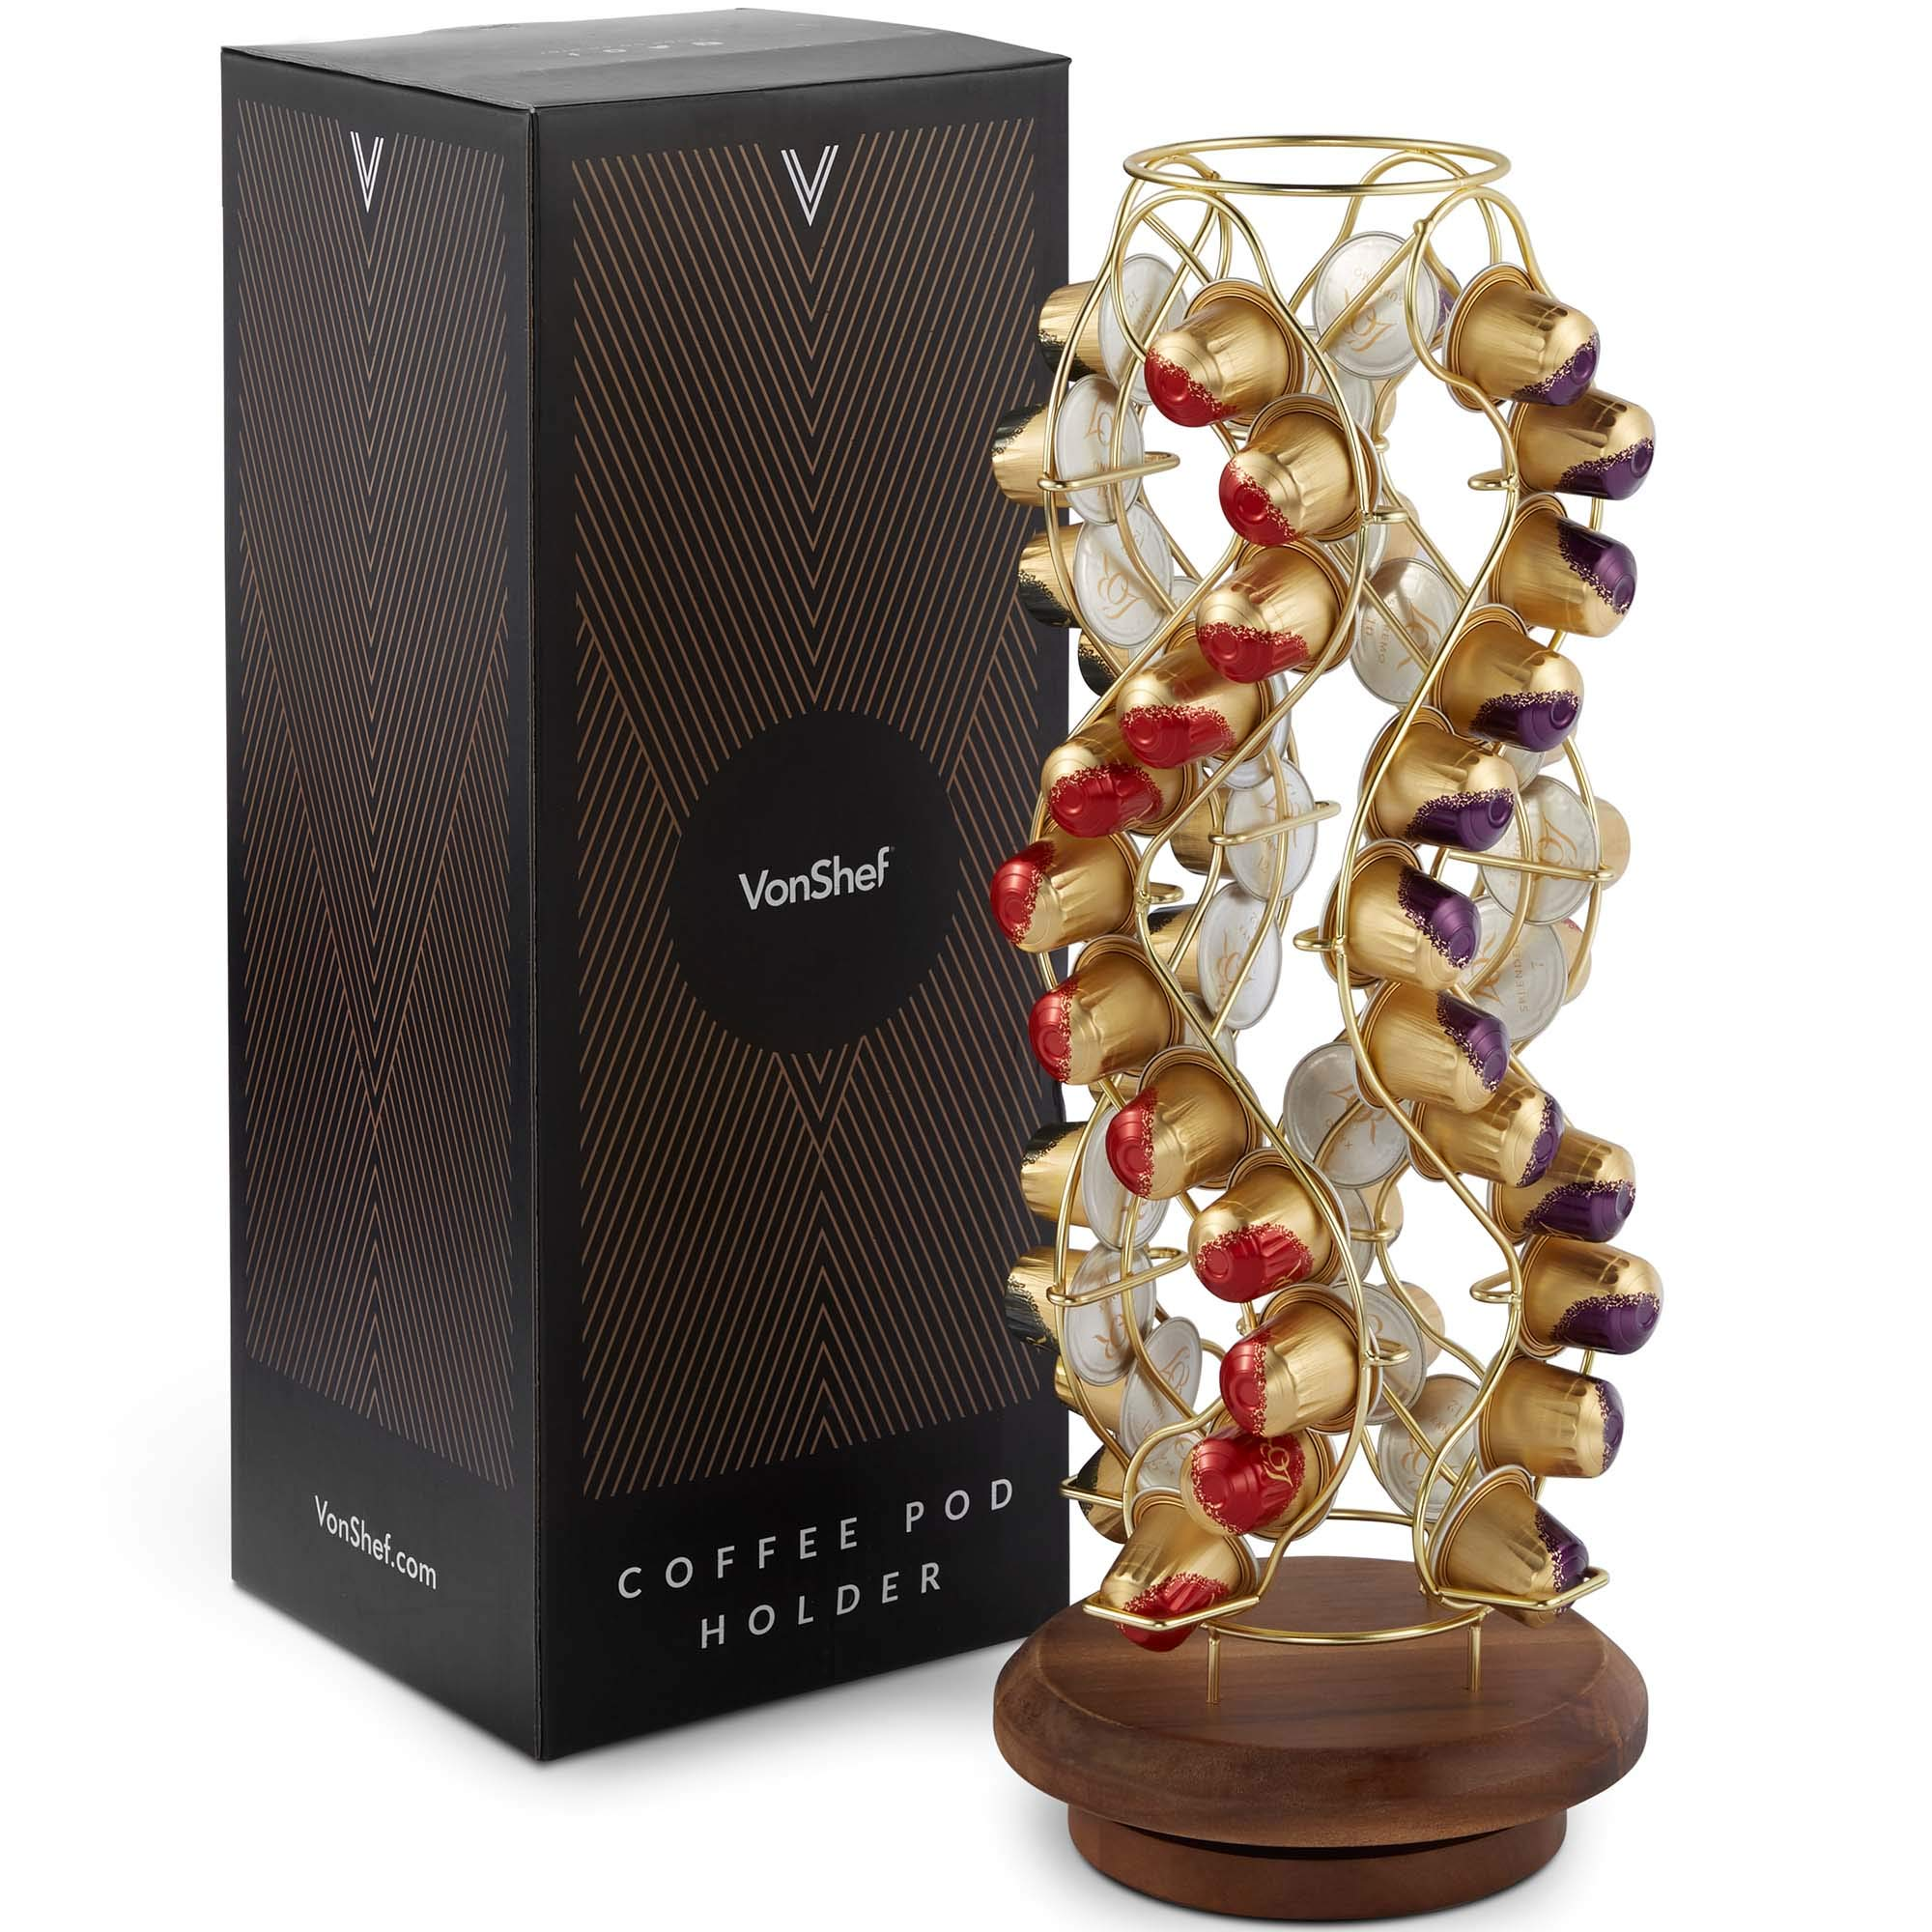 VonShef Coffee Pod Holder, Decorative Brushed Gold Stainless Steel Wire Mounted On Wooden Stand, 42 Pod Capacity Compatible with Nespresso Capsule by VonShef